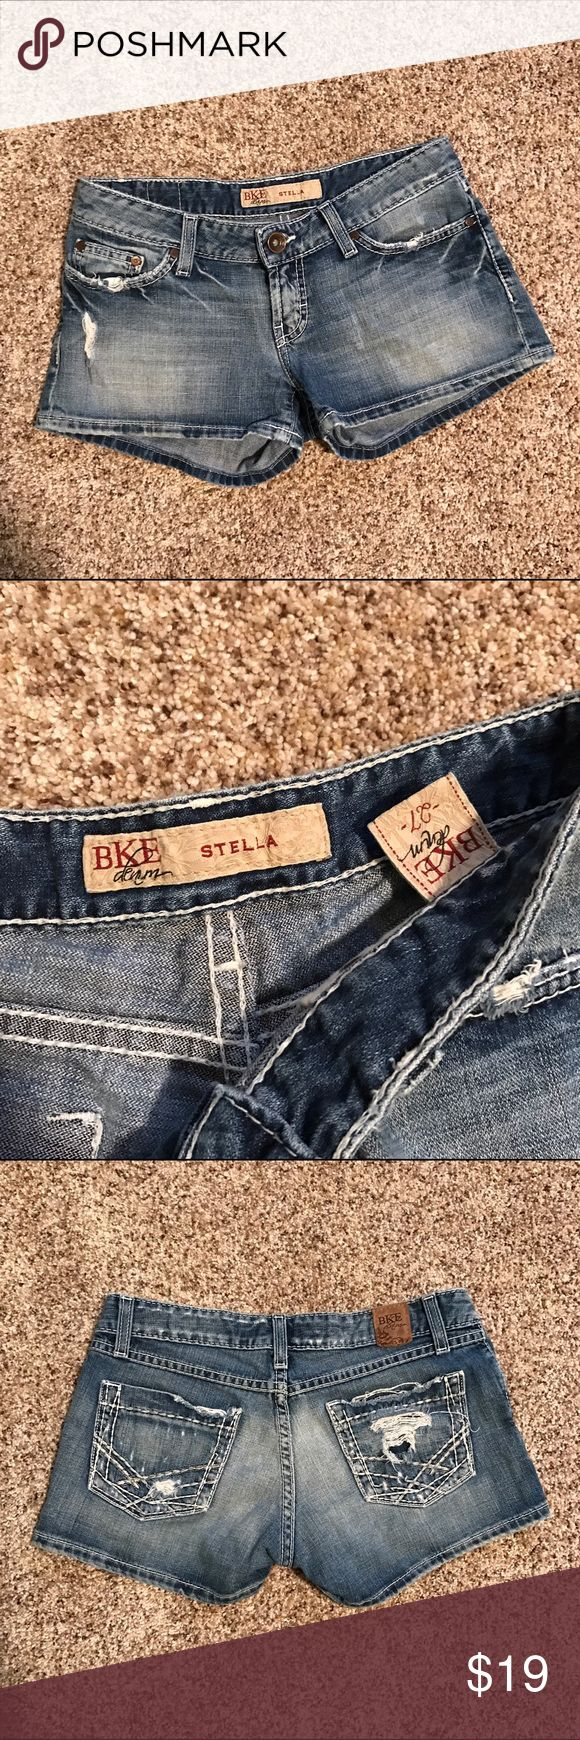 """BKE Stella Blue Jean Shorts size 27 BKE Stella Distressed Blue Jean Shorts. Purchased from Buckle. Size 27. Waist laying flat 15 1/2"""", waist around 33 1/2"""", inseam 2 1/2"""". Factory fraying, fading, rips, tears and/or holes for distressed look. In very good condition, worn 3-4 times. BKE Shorts Jean Shorts"""